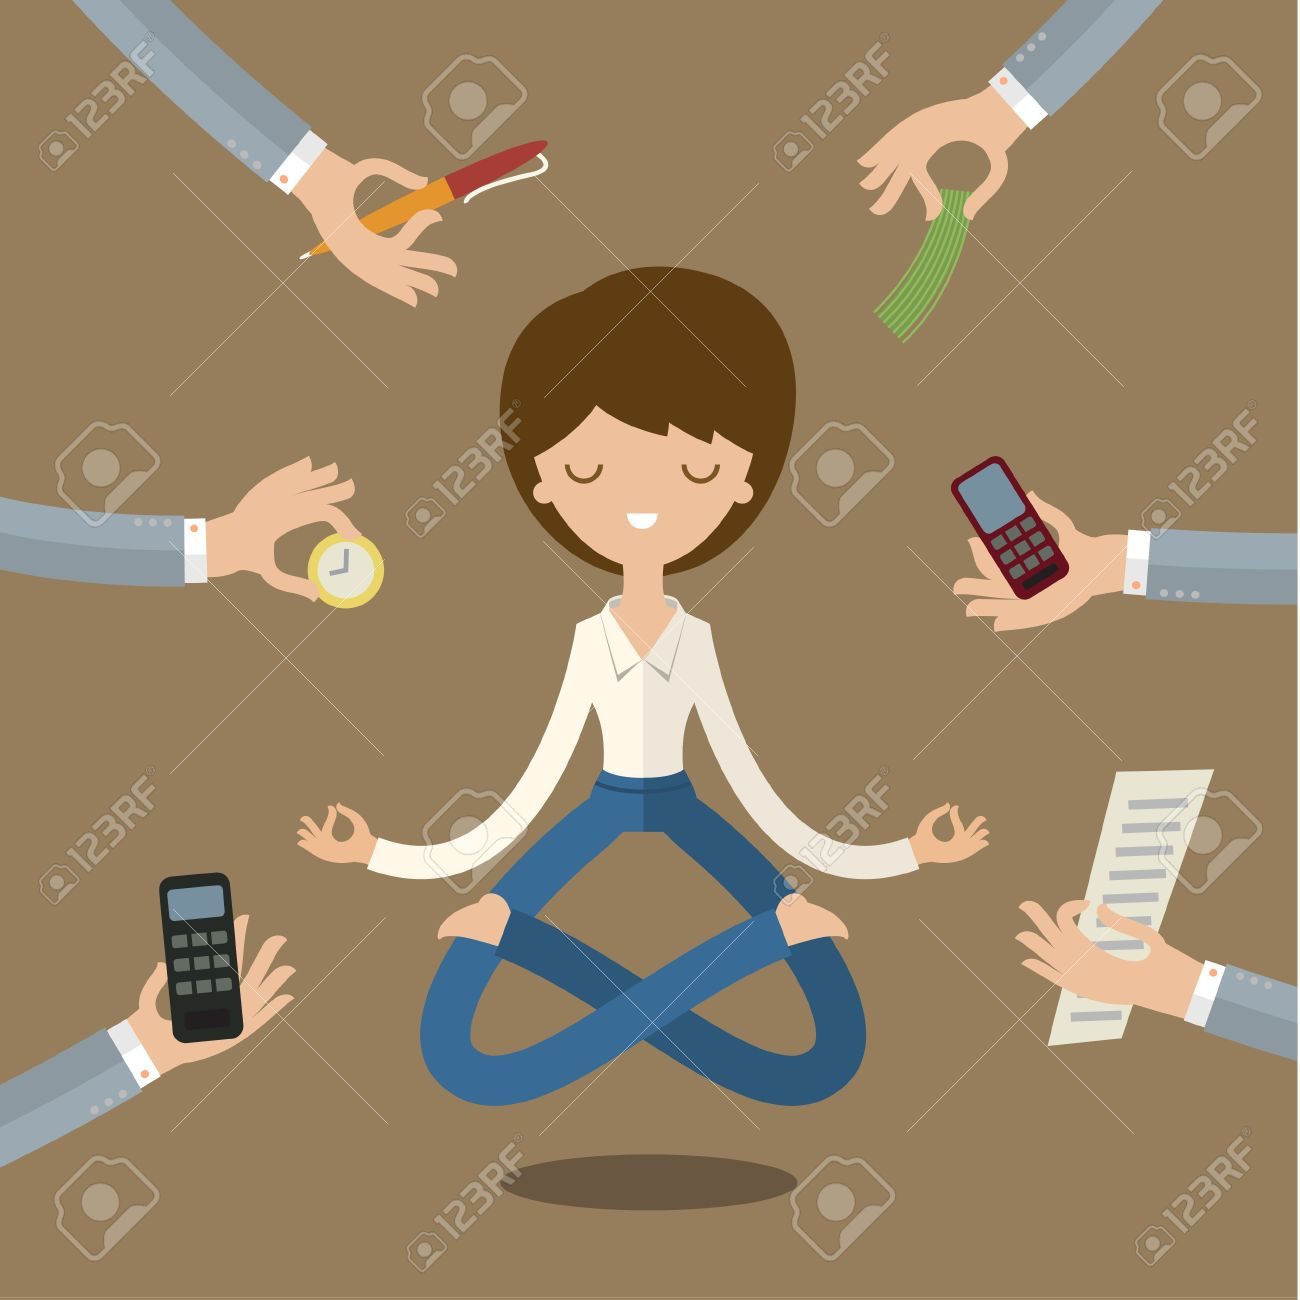 Businesswoman doing Yoga to calm down the stressful emotion from multi-tasking and very busy working. - 47619318